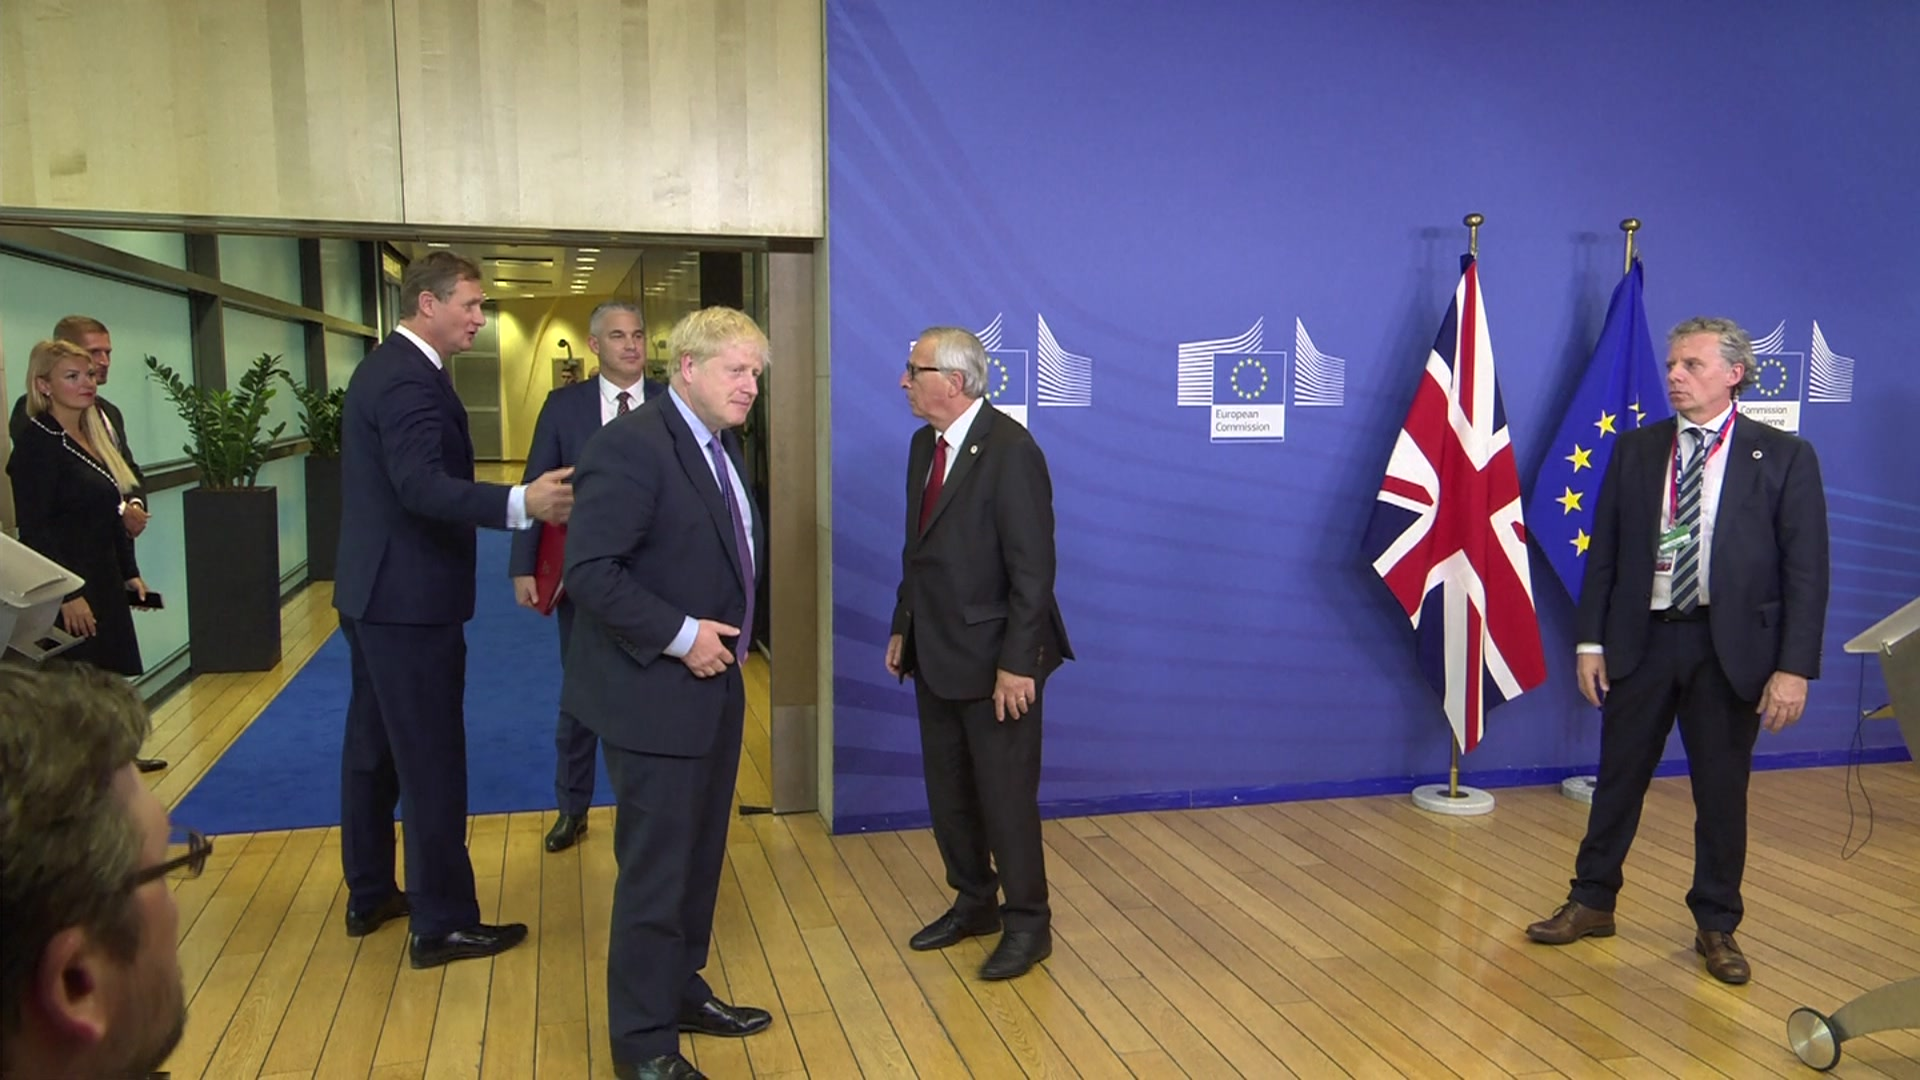 PM and Juncker end statement